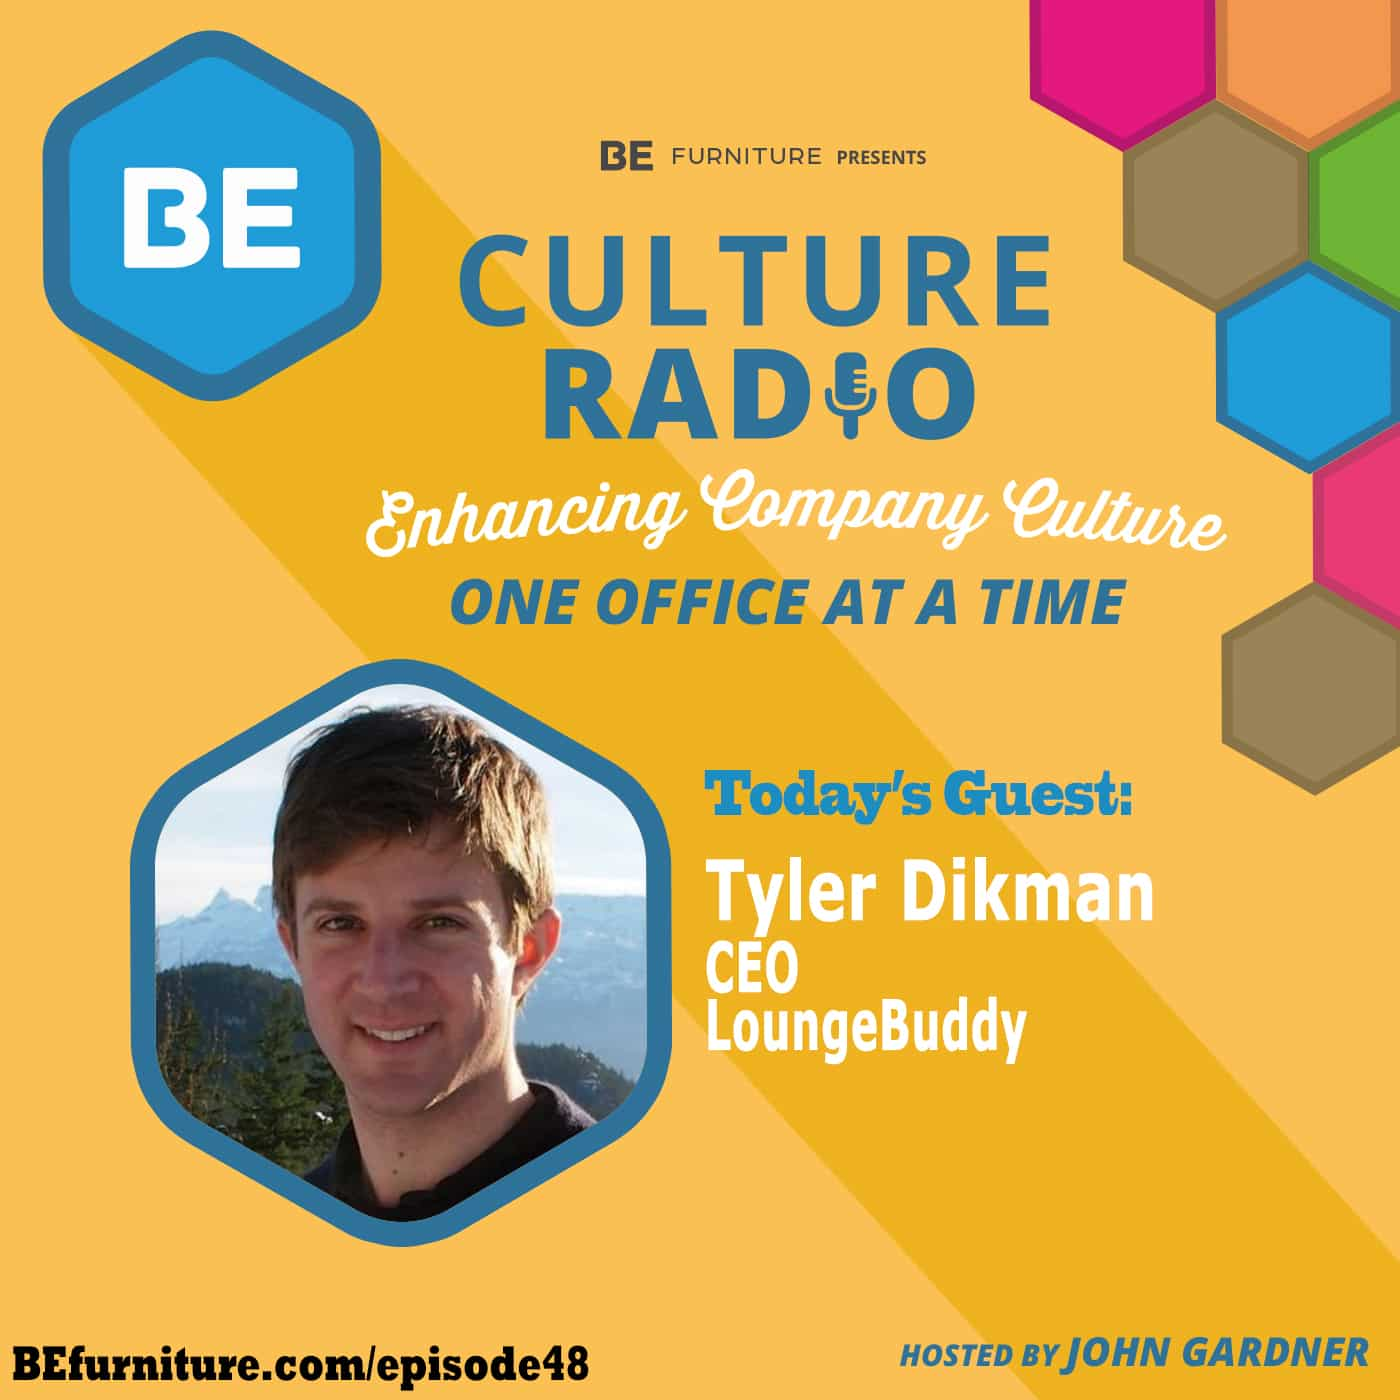 Tyler Dikman - CEO, LoungeBuddy